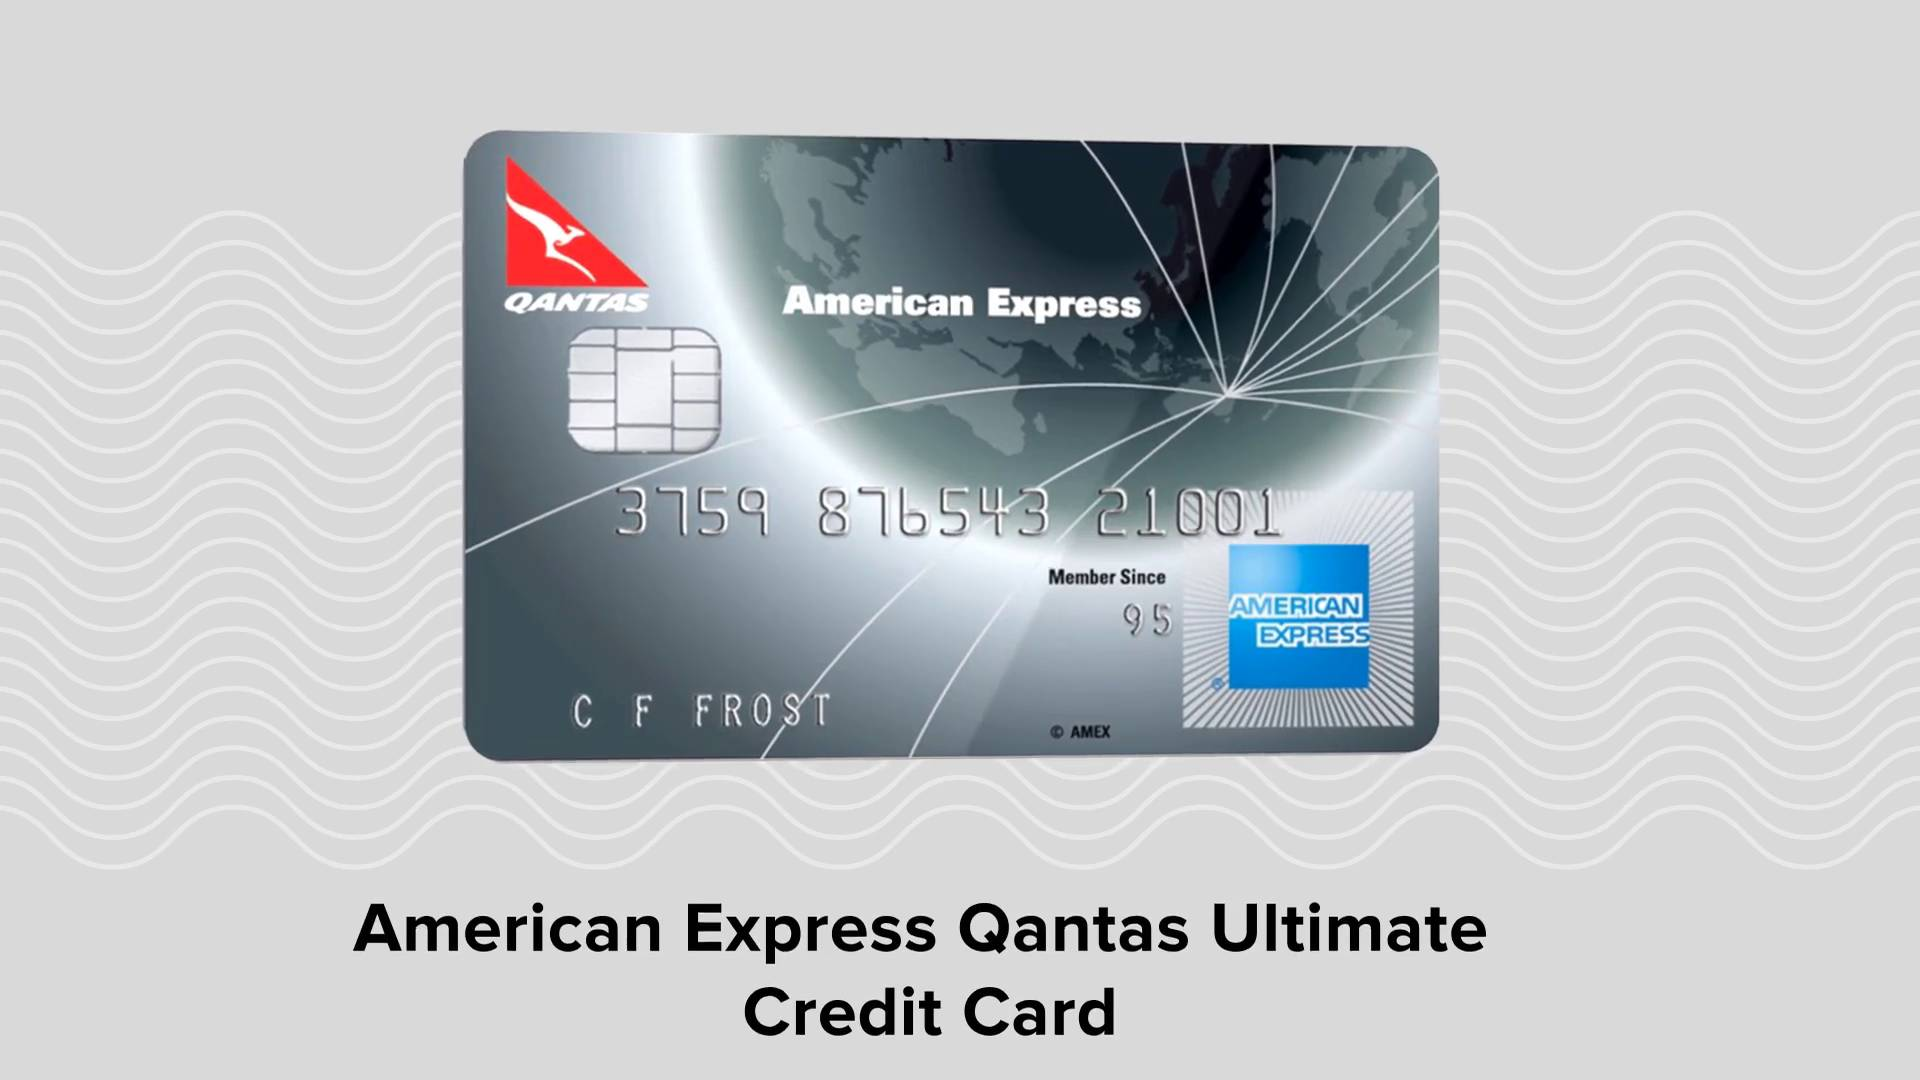 Frequent flyer credit cards get the best card to earn points reheart Images